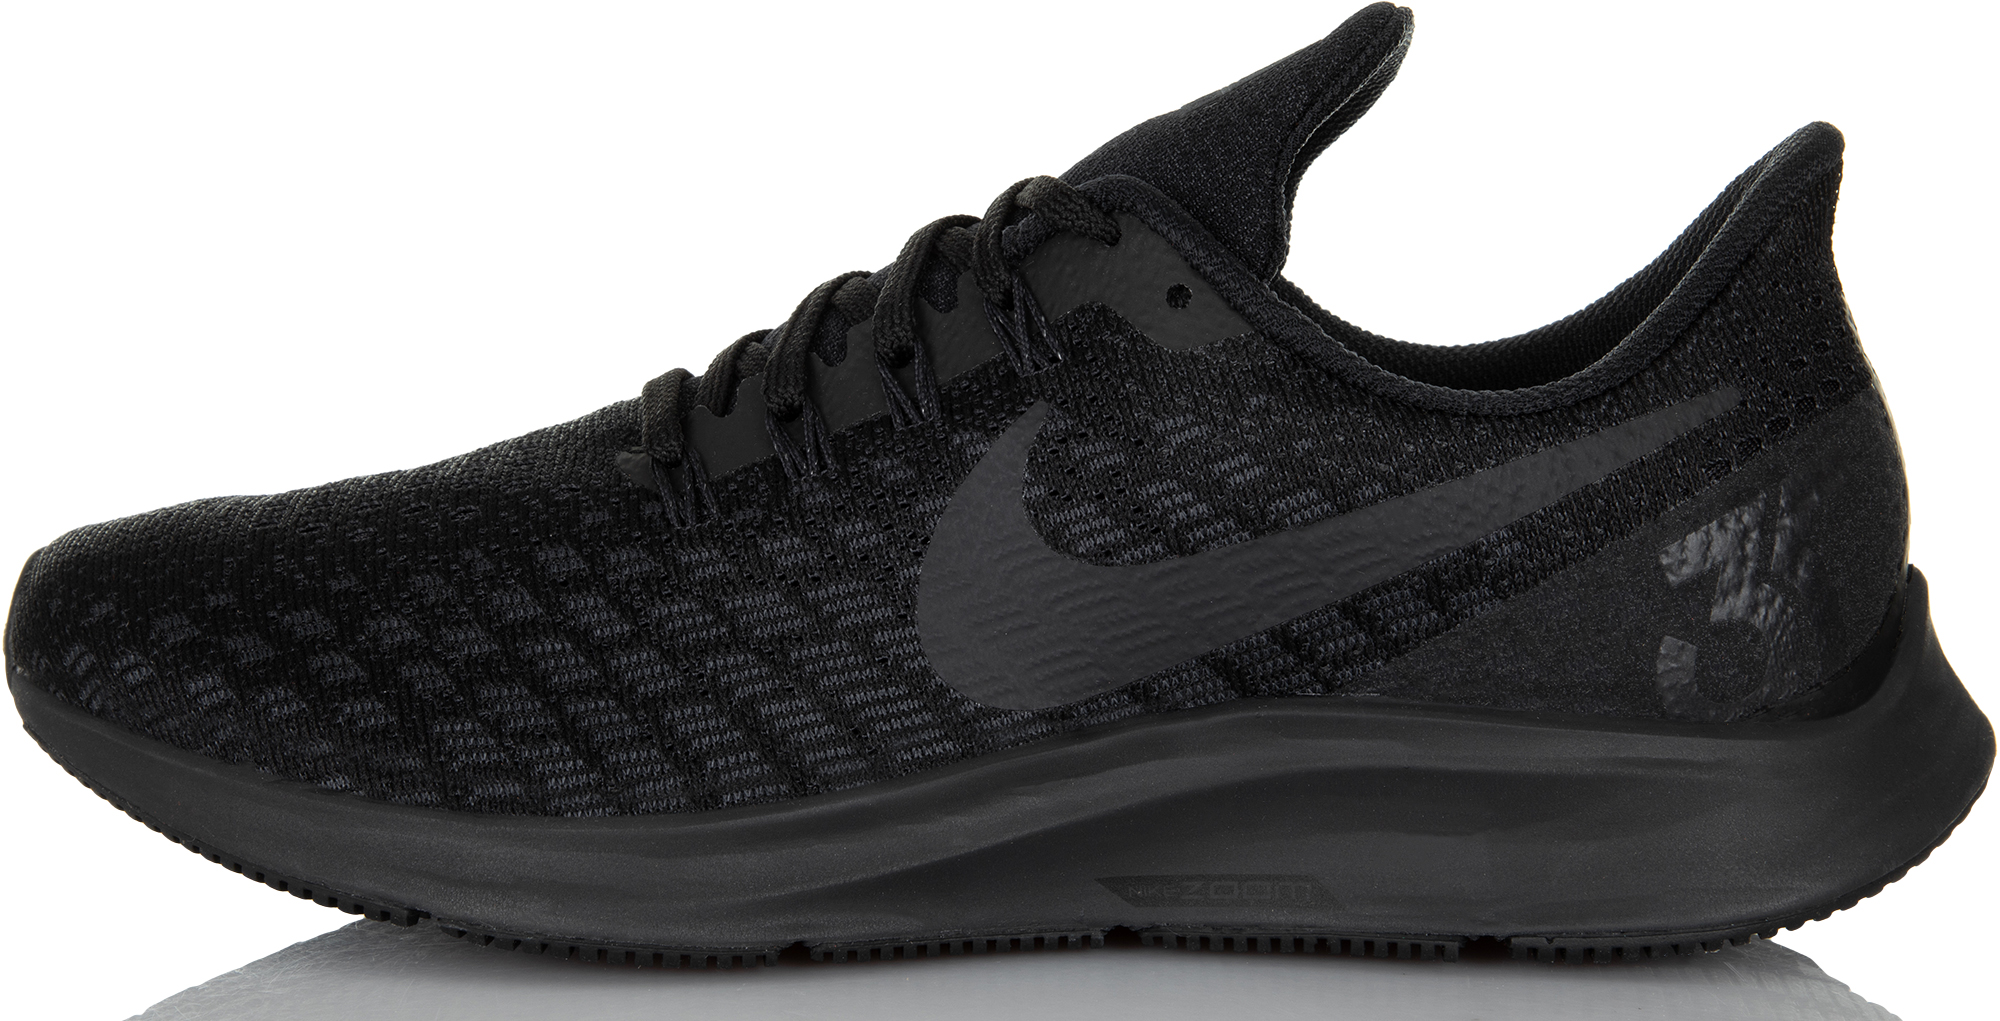 Nike Кроссовки женские Nike Air Zoom Pegasus 35, размер 40